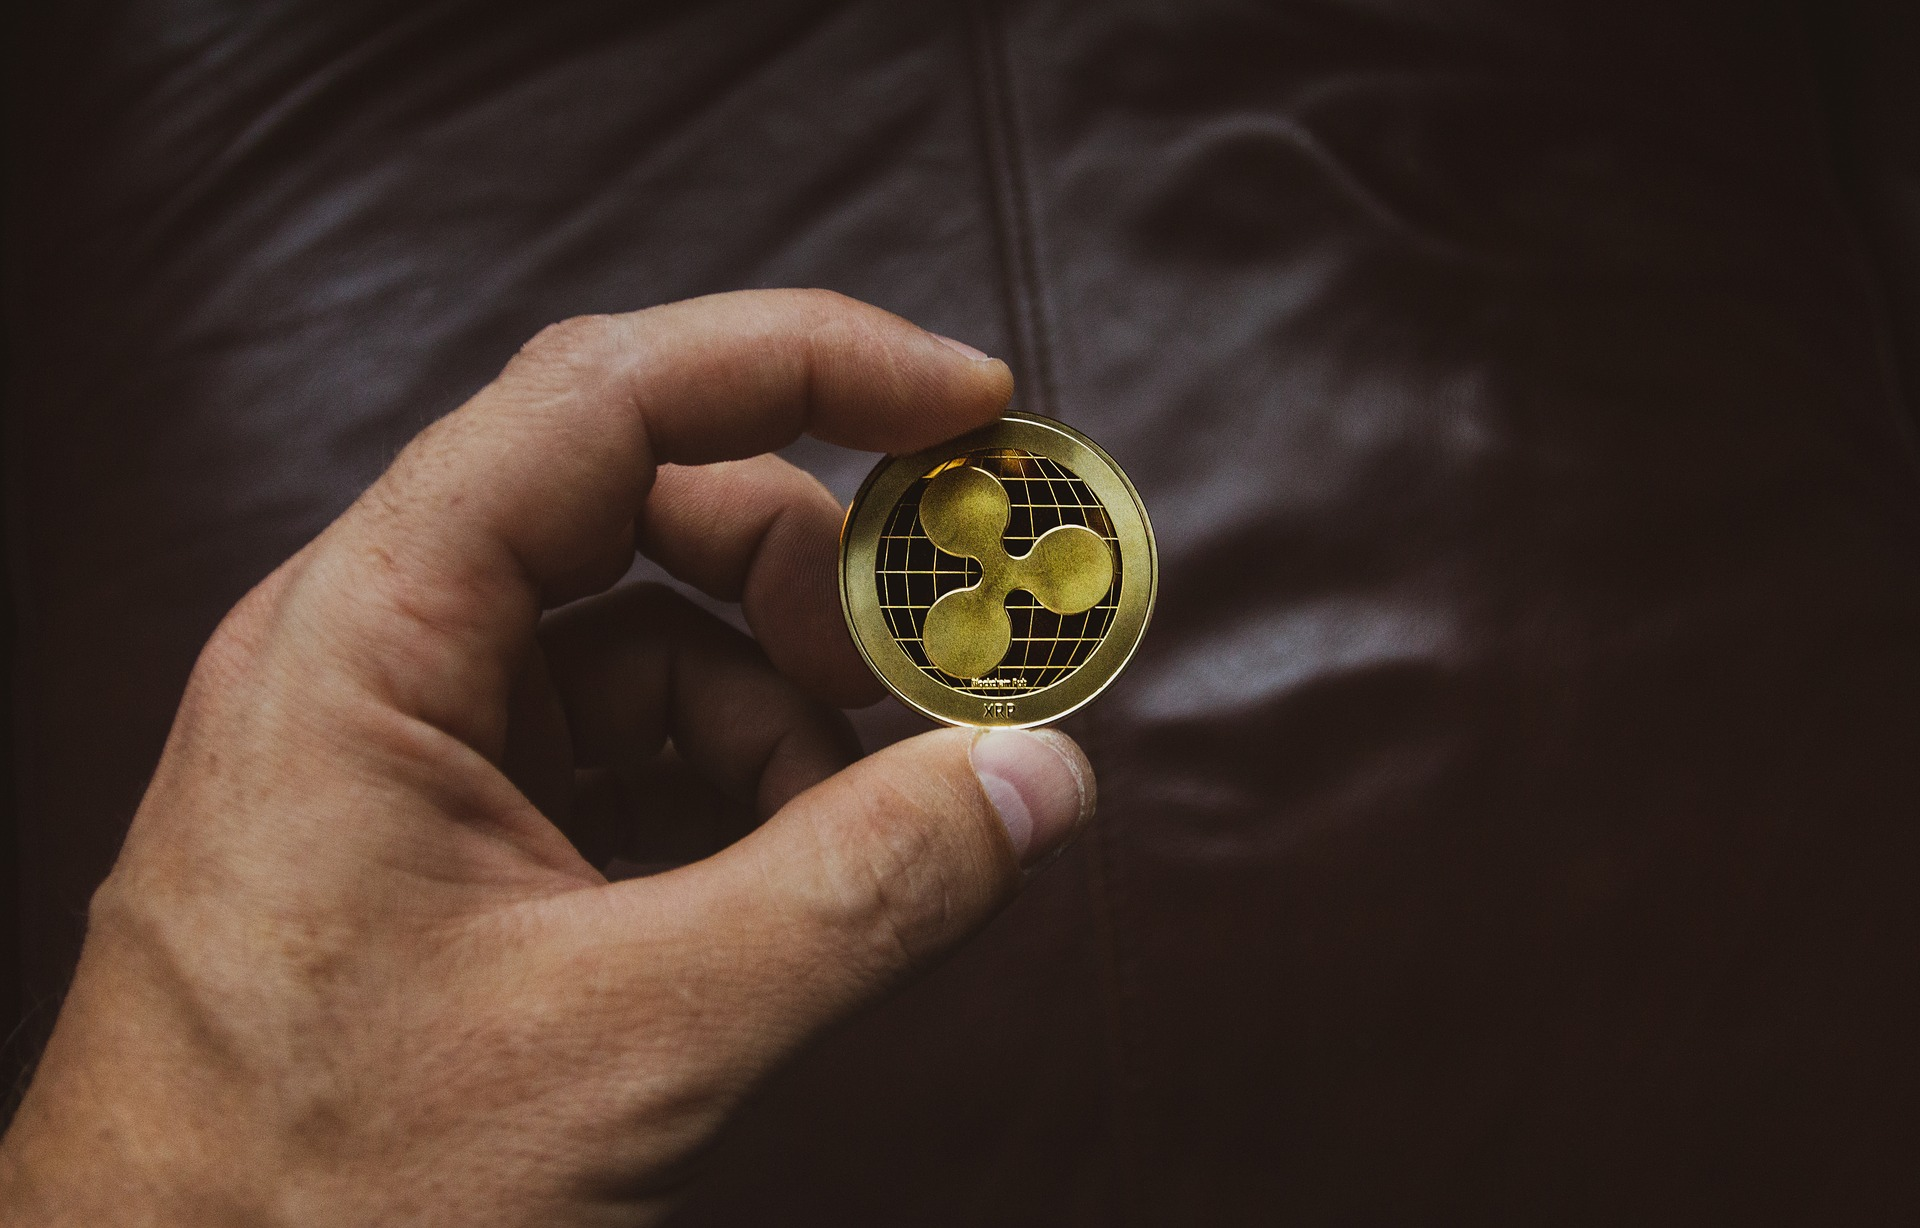 Promising Altcoins